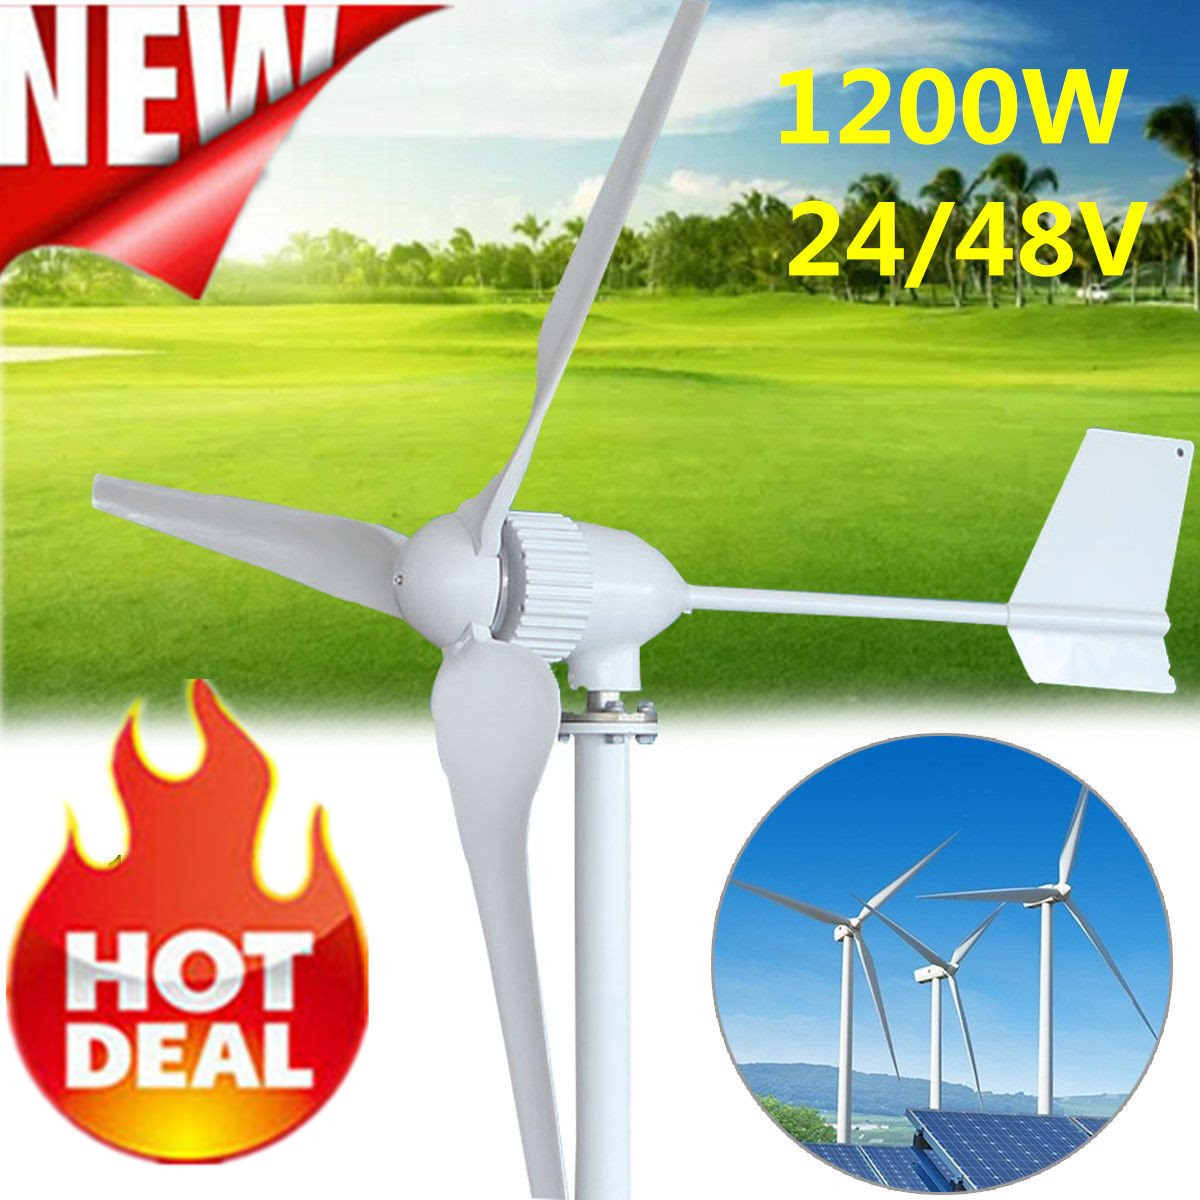 New Hot Sale 1200W 24/48V Wind Generator Automatic Adjustable Generator Fit For Home Or Marine Power Supply